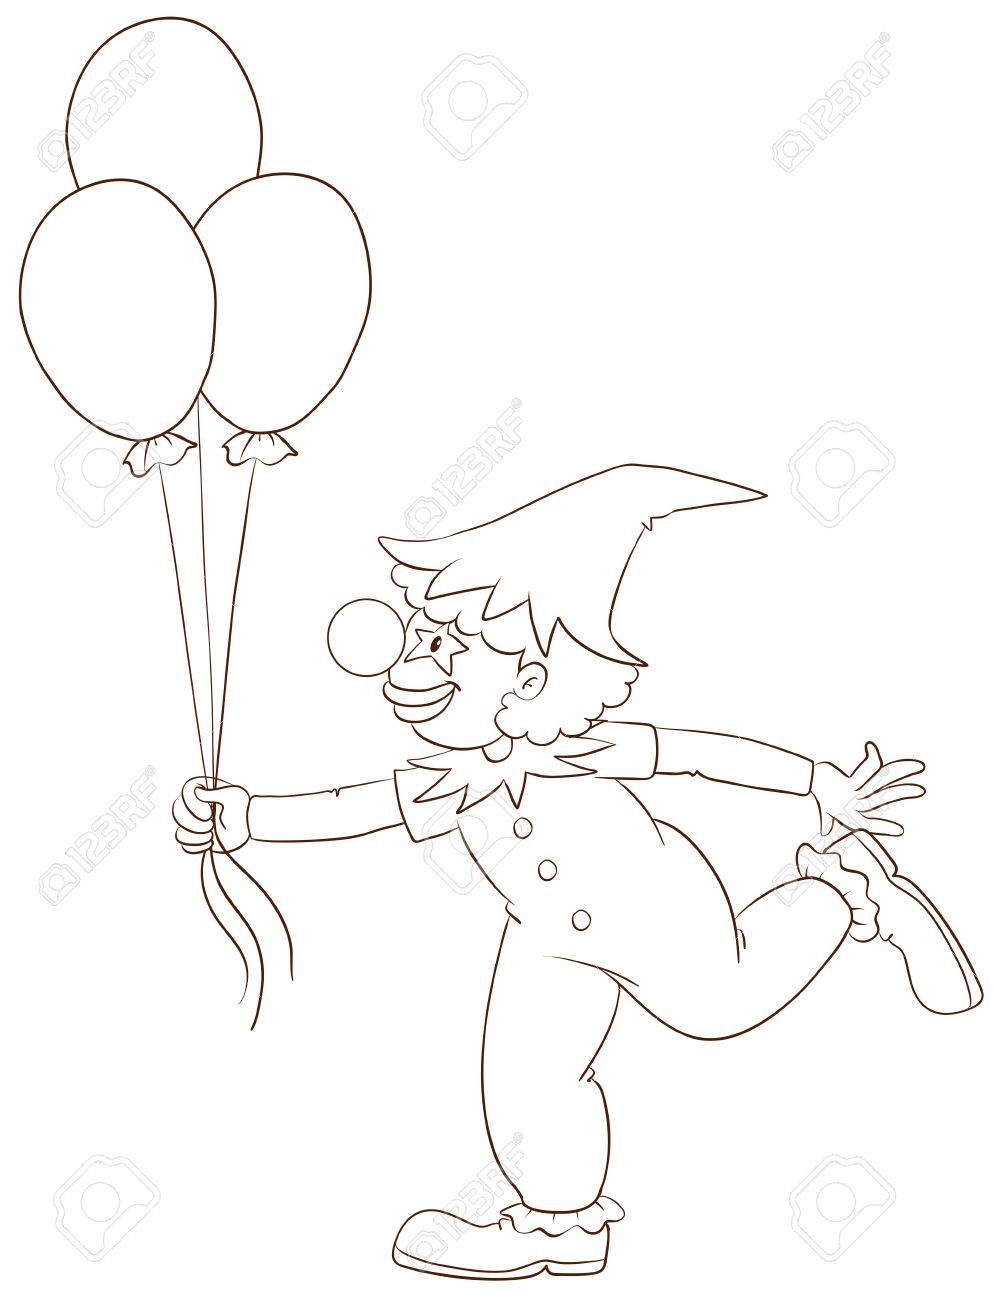 illustration of a simple sketch of a clown on a white background